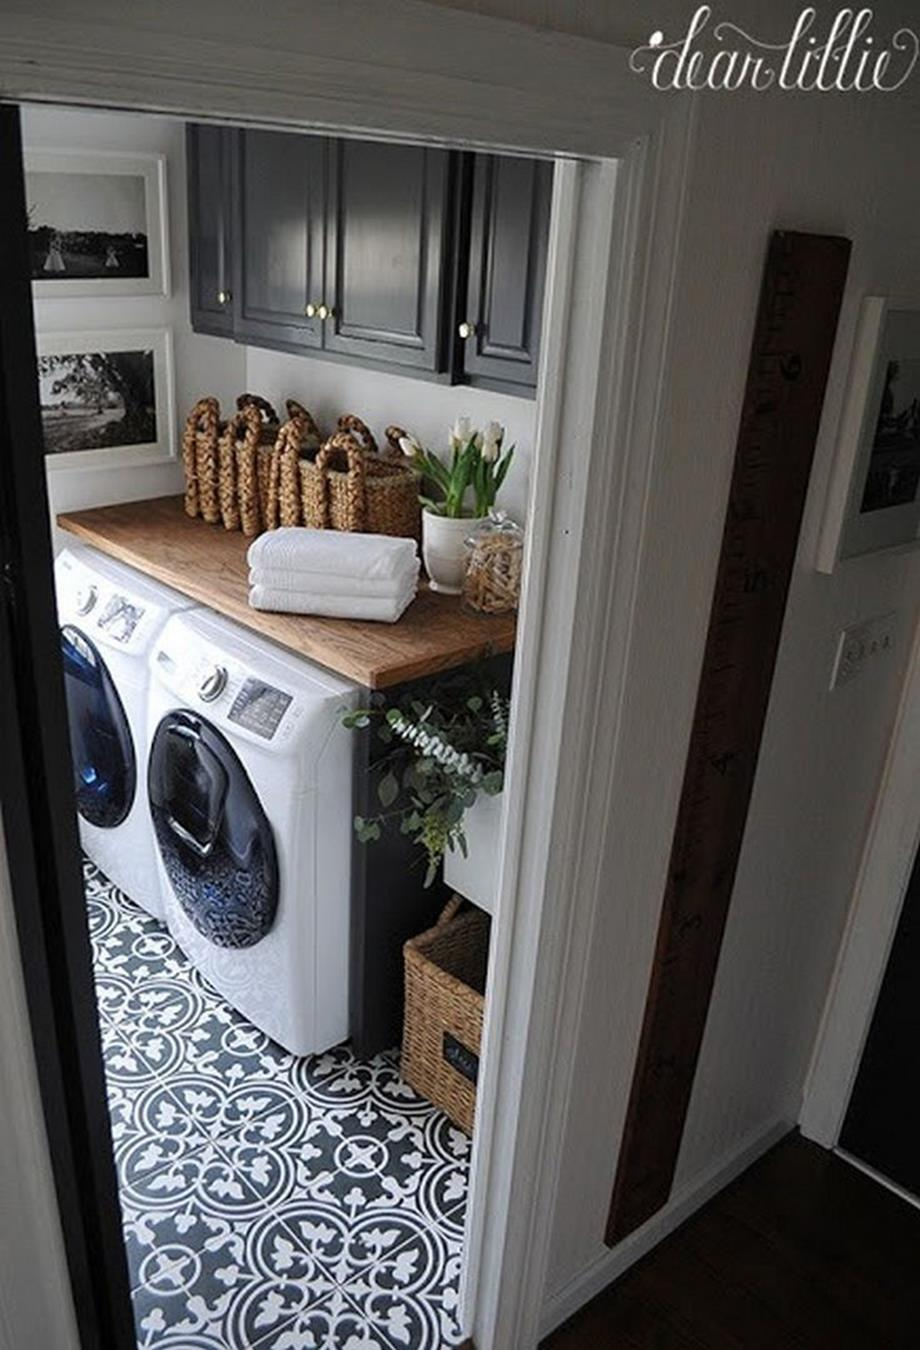 Decorating A Laundry Room On A Budget 2